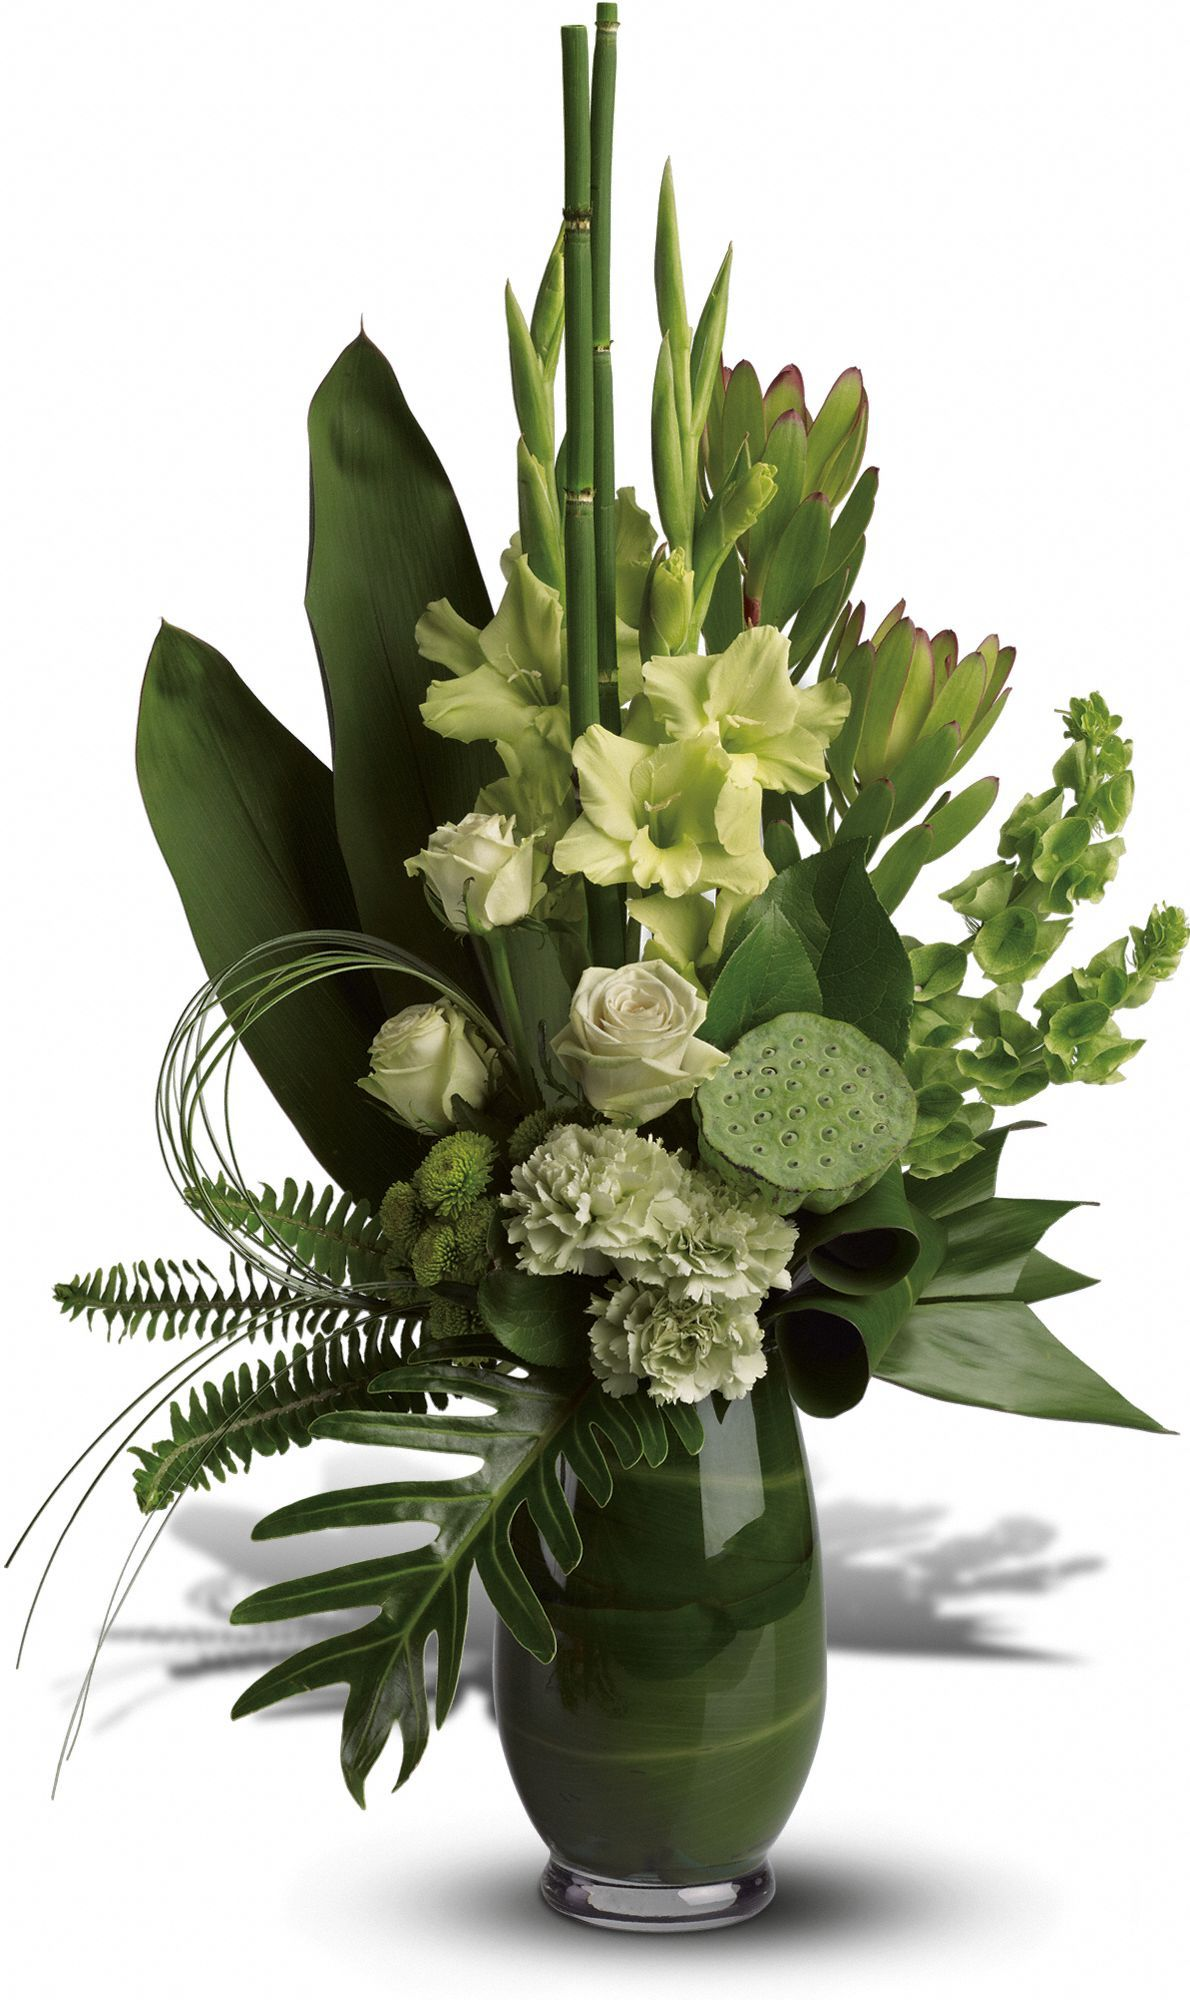 Limelight Bouquet Flowers, Limelight Flower Bouquet  Telefloracom Tropical Flowersflower